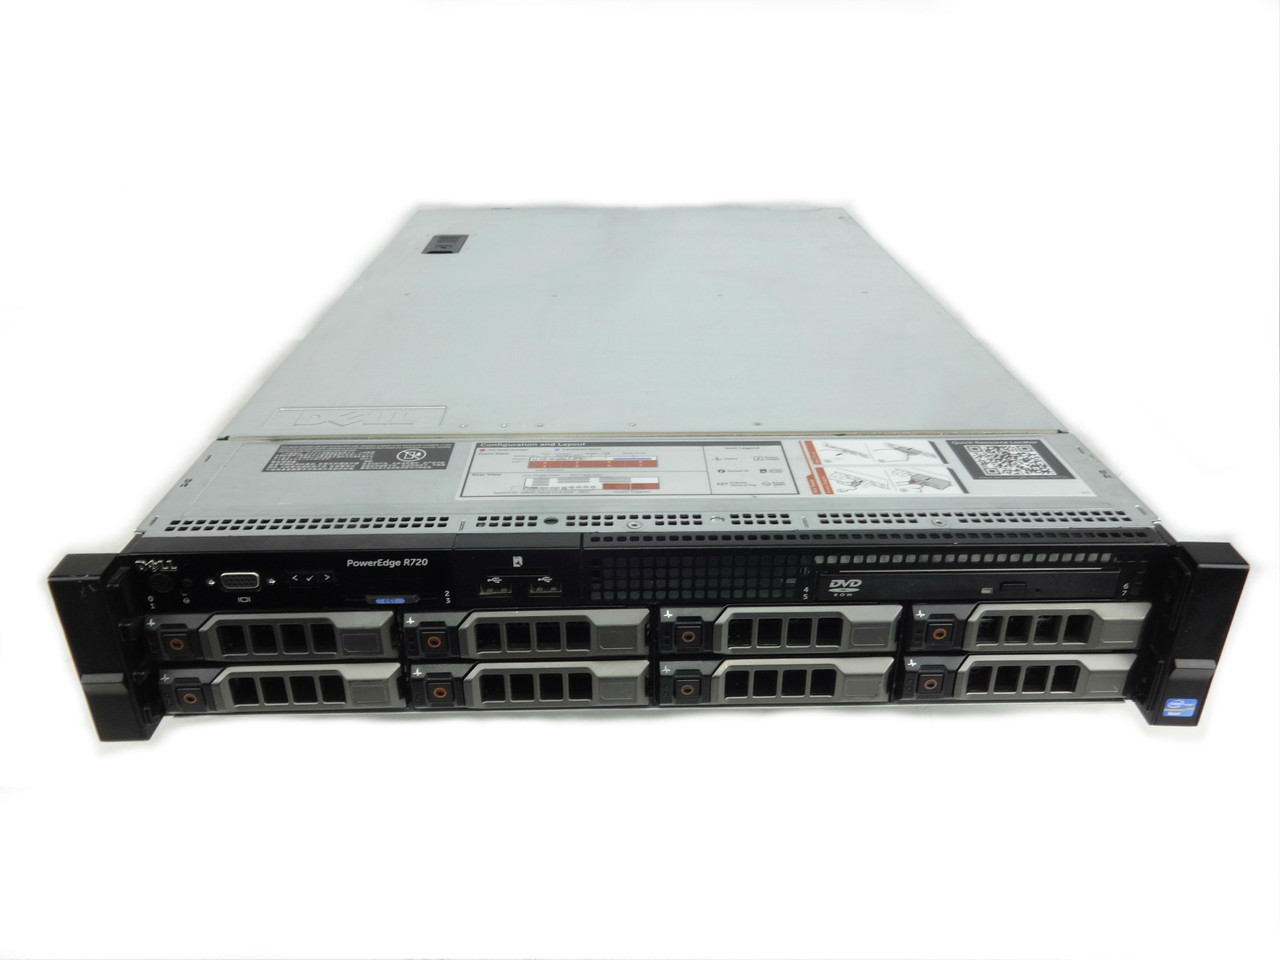 Dell Poweredge R720 LFF Server